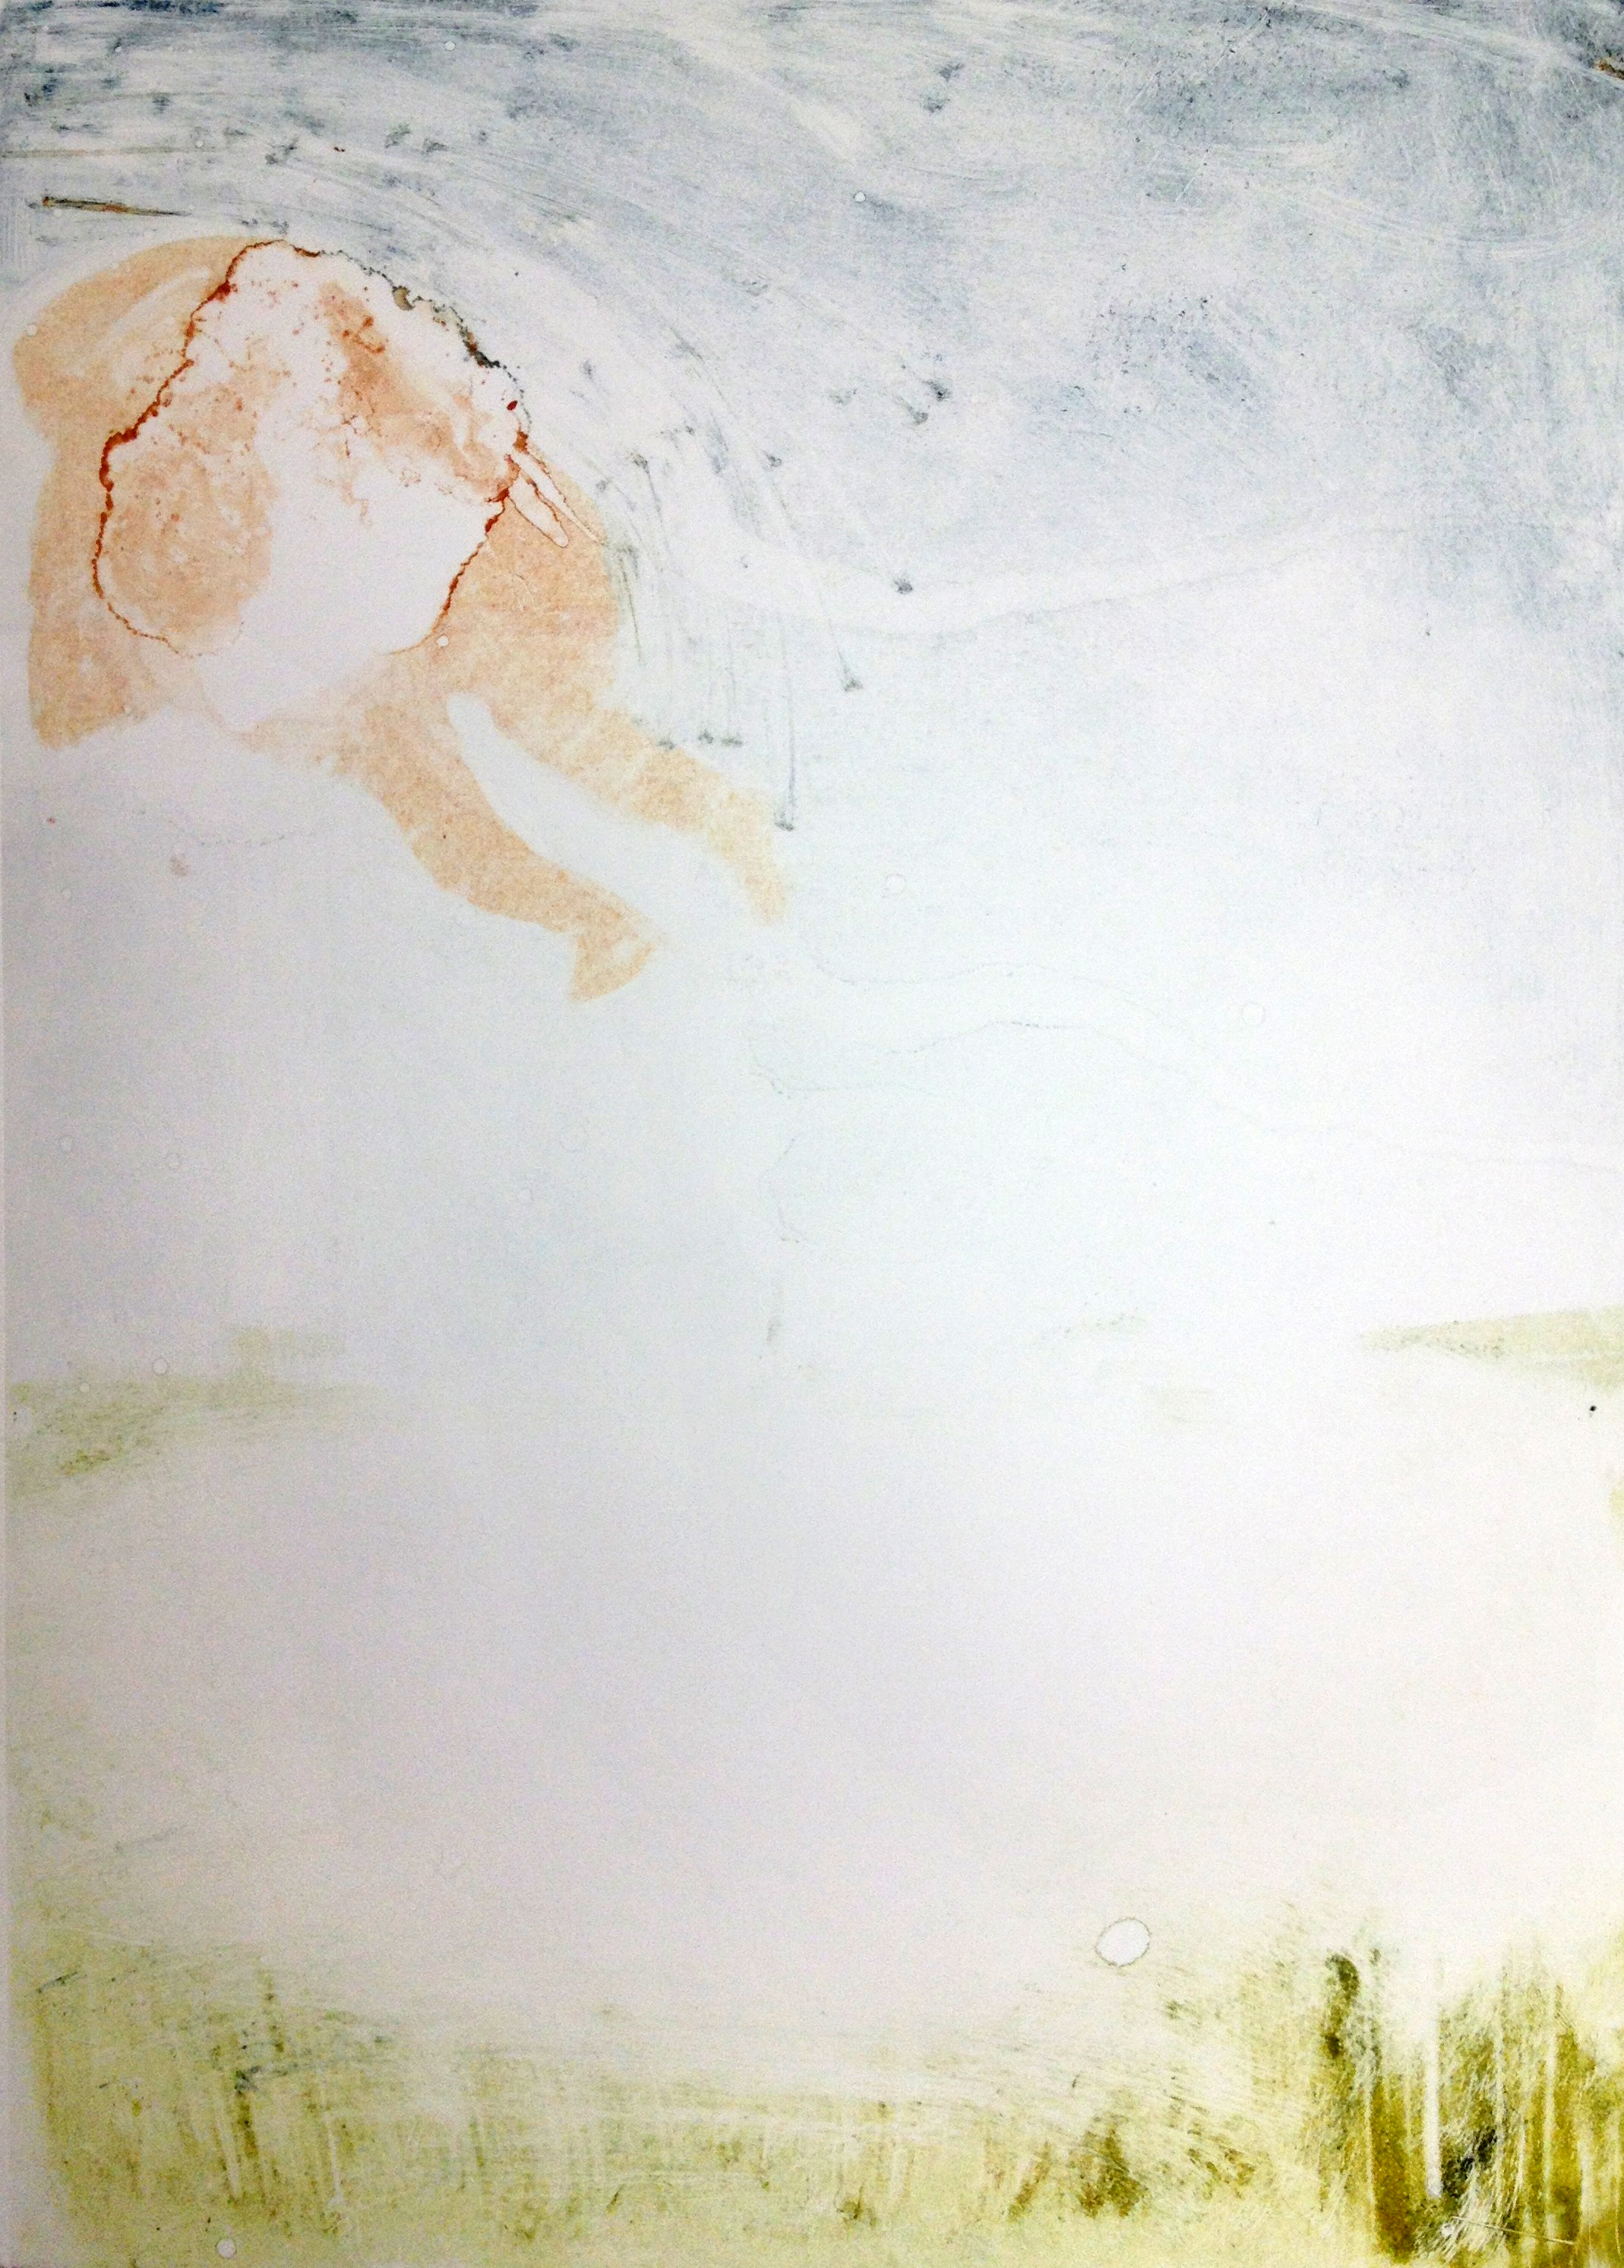 An Astronaut Visits The Earth, 2013, monotype